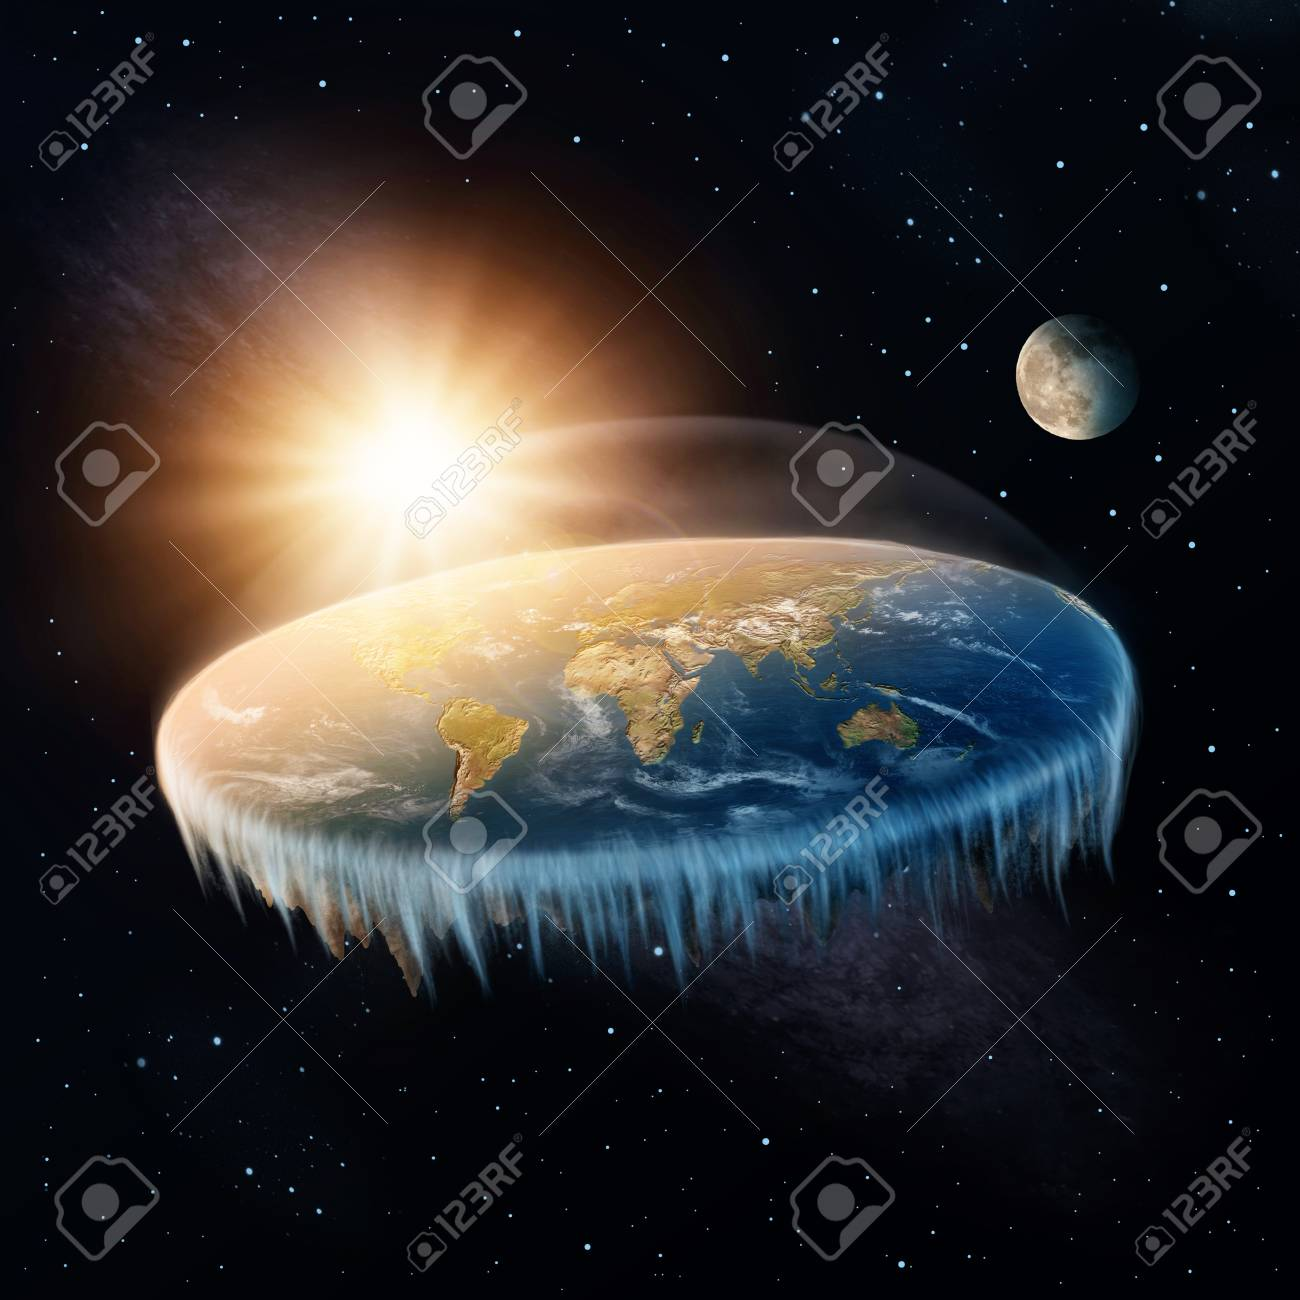 Flat Earth in space with sun and moon - 88638411